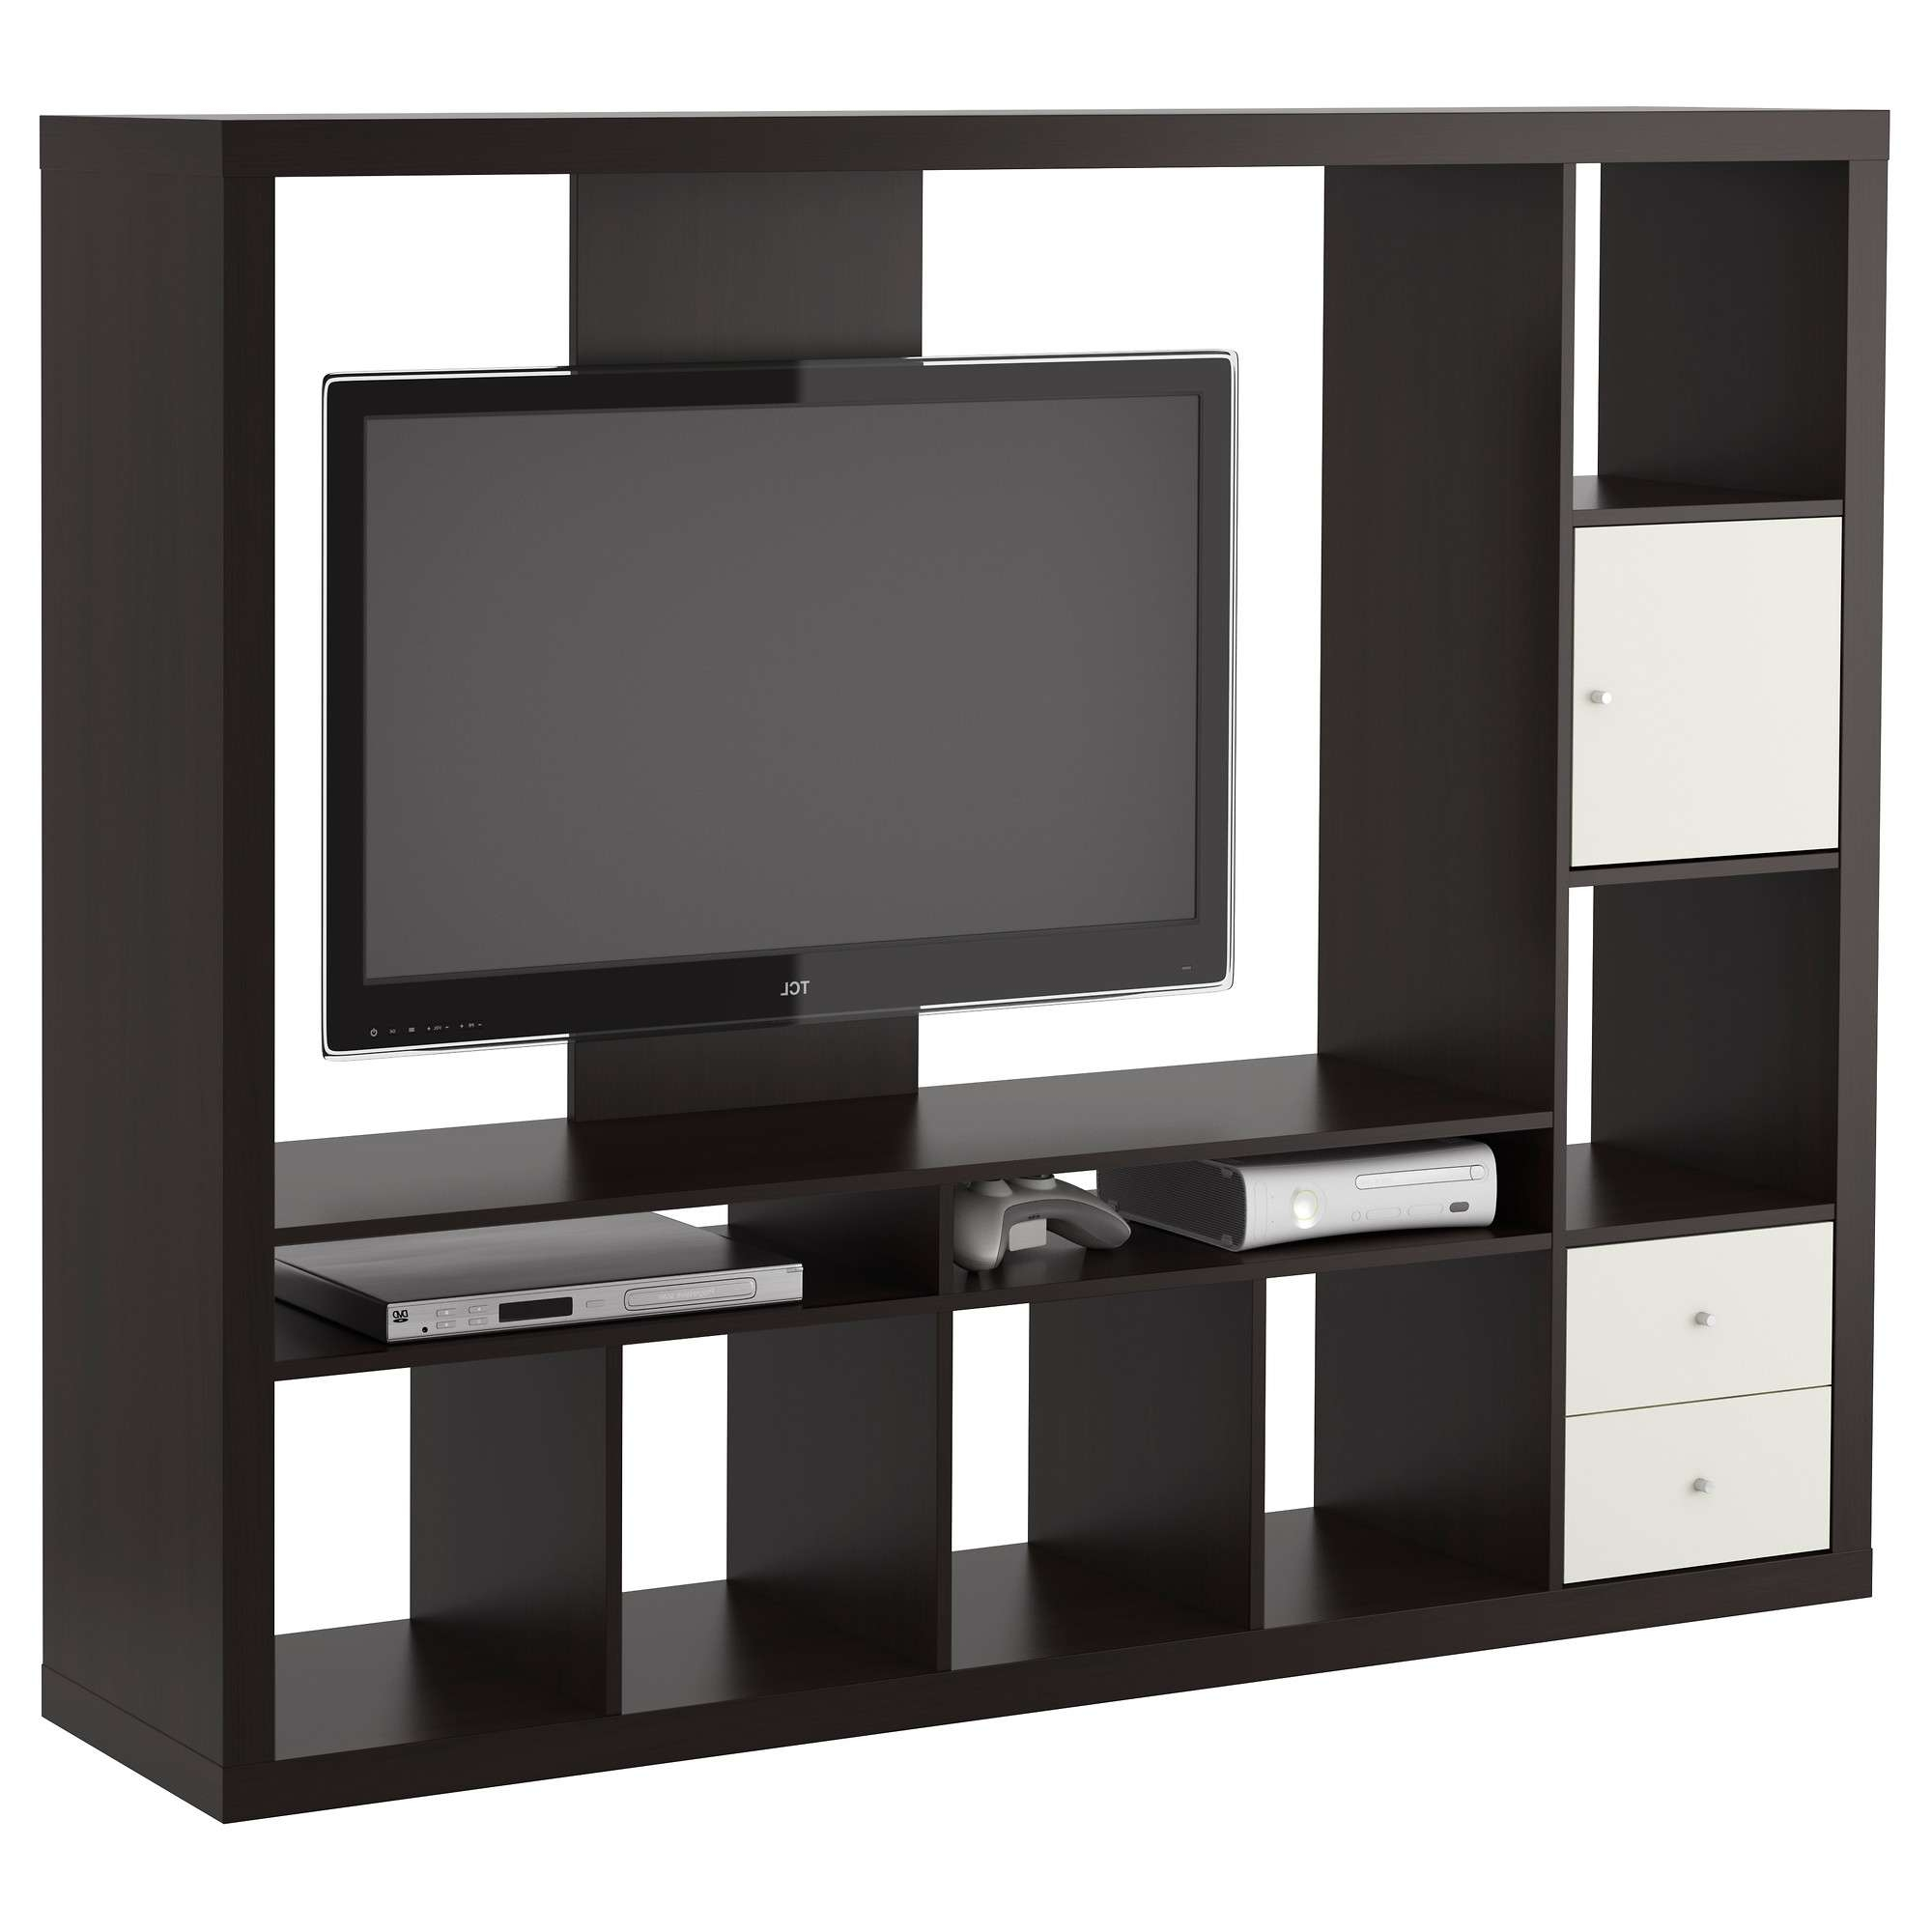 Square Black Shelving Units With White Wooden Drawers And Intended For Square Tv Stands (View 12 of 15)